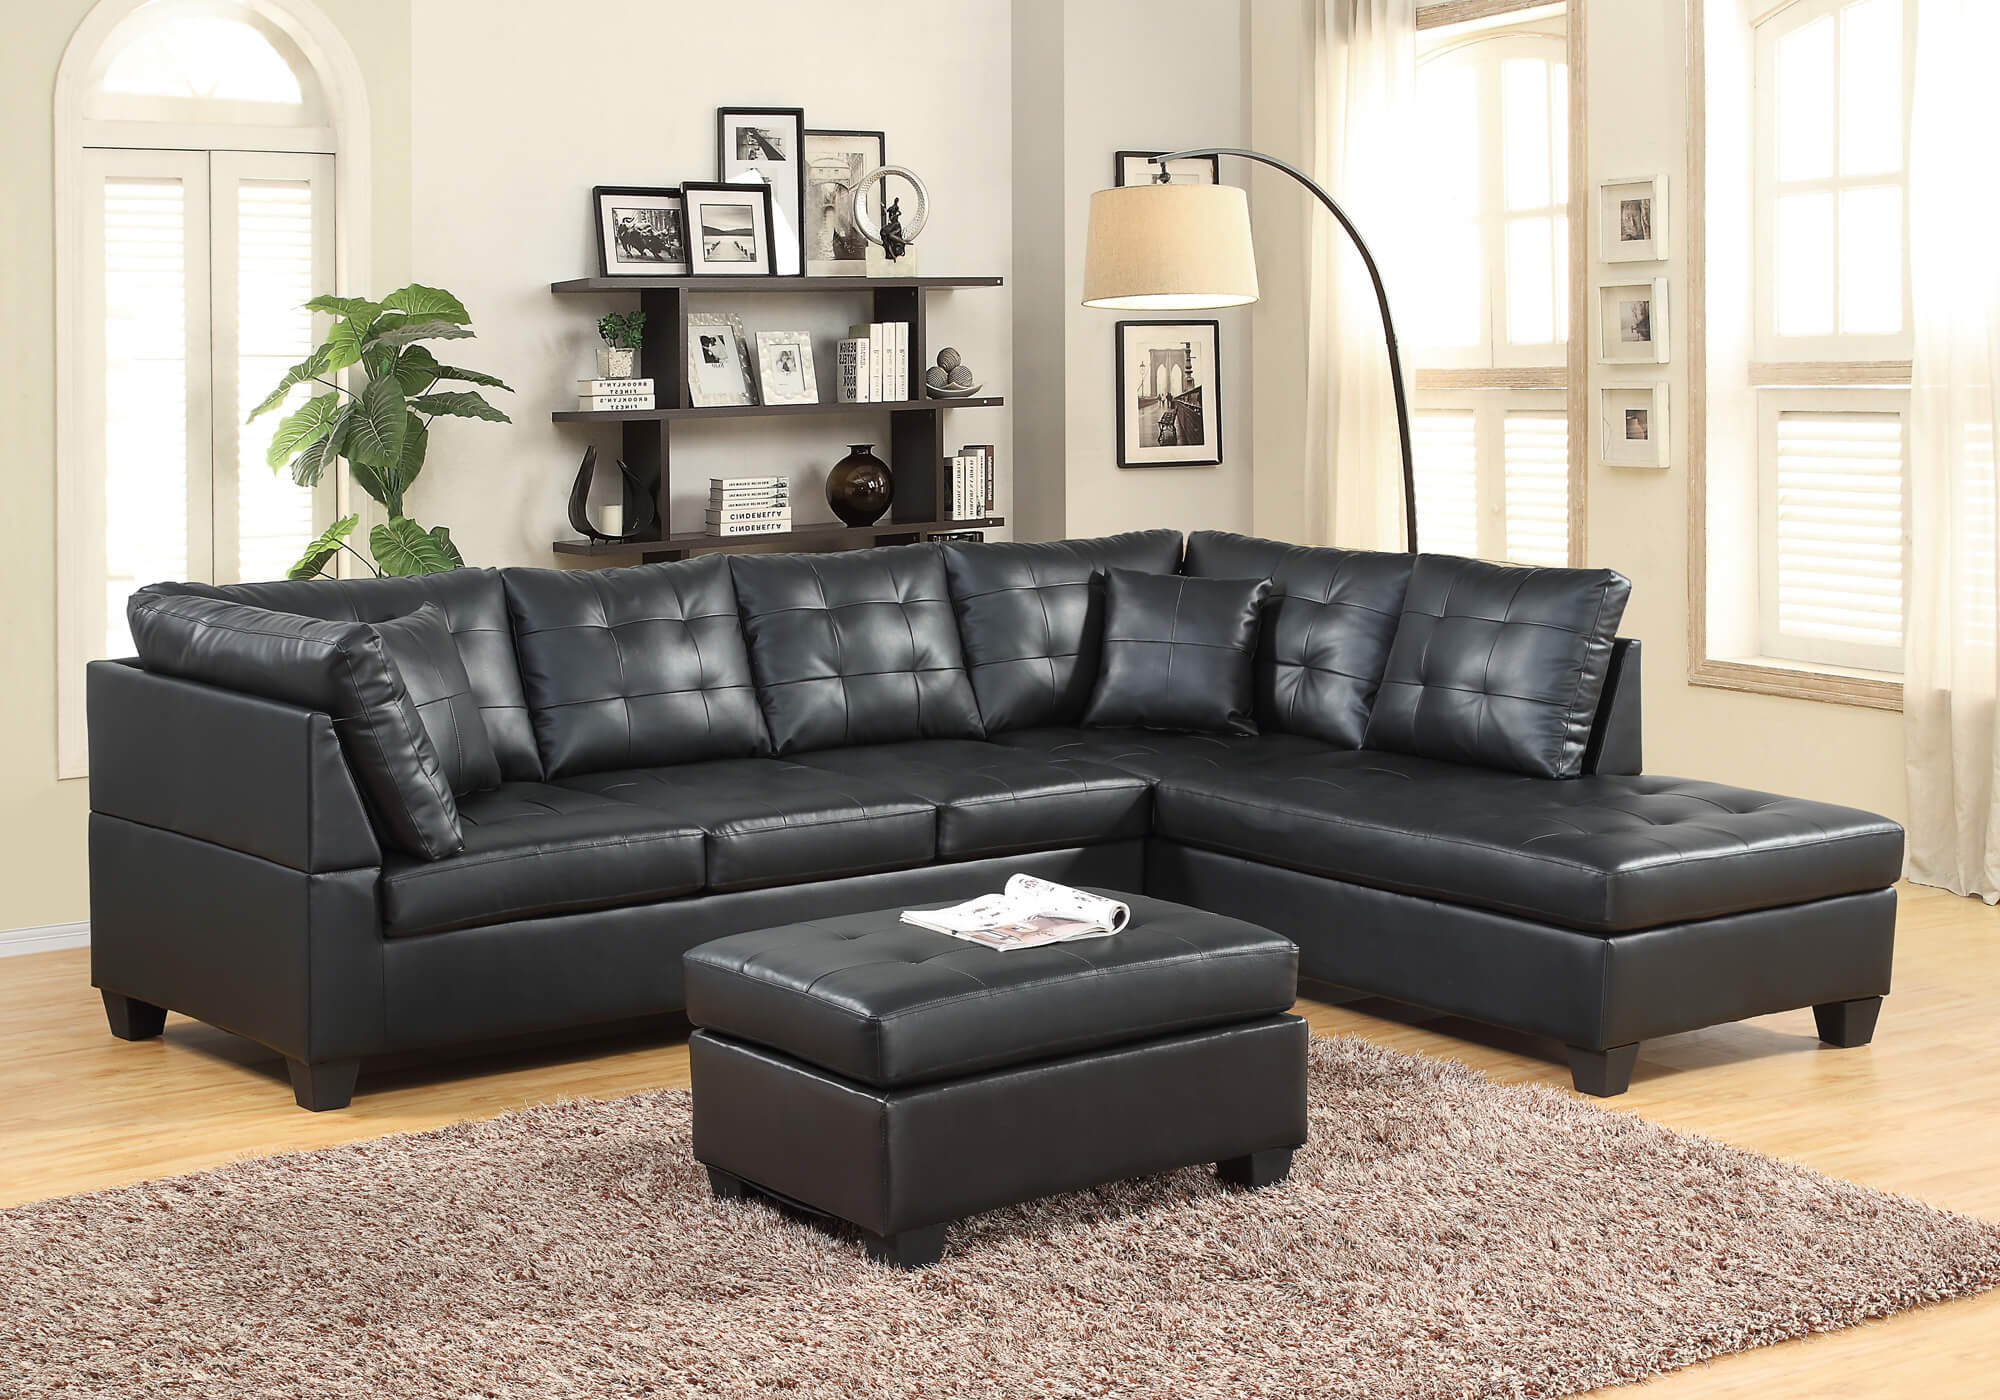 Black leather like sectiona sectional sofa sets for Leather living room furniture